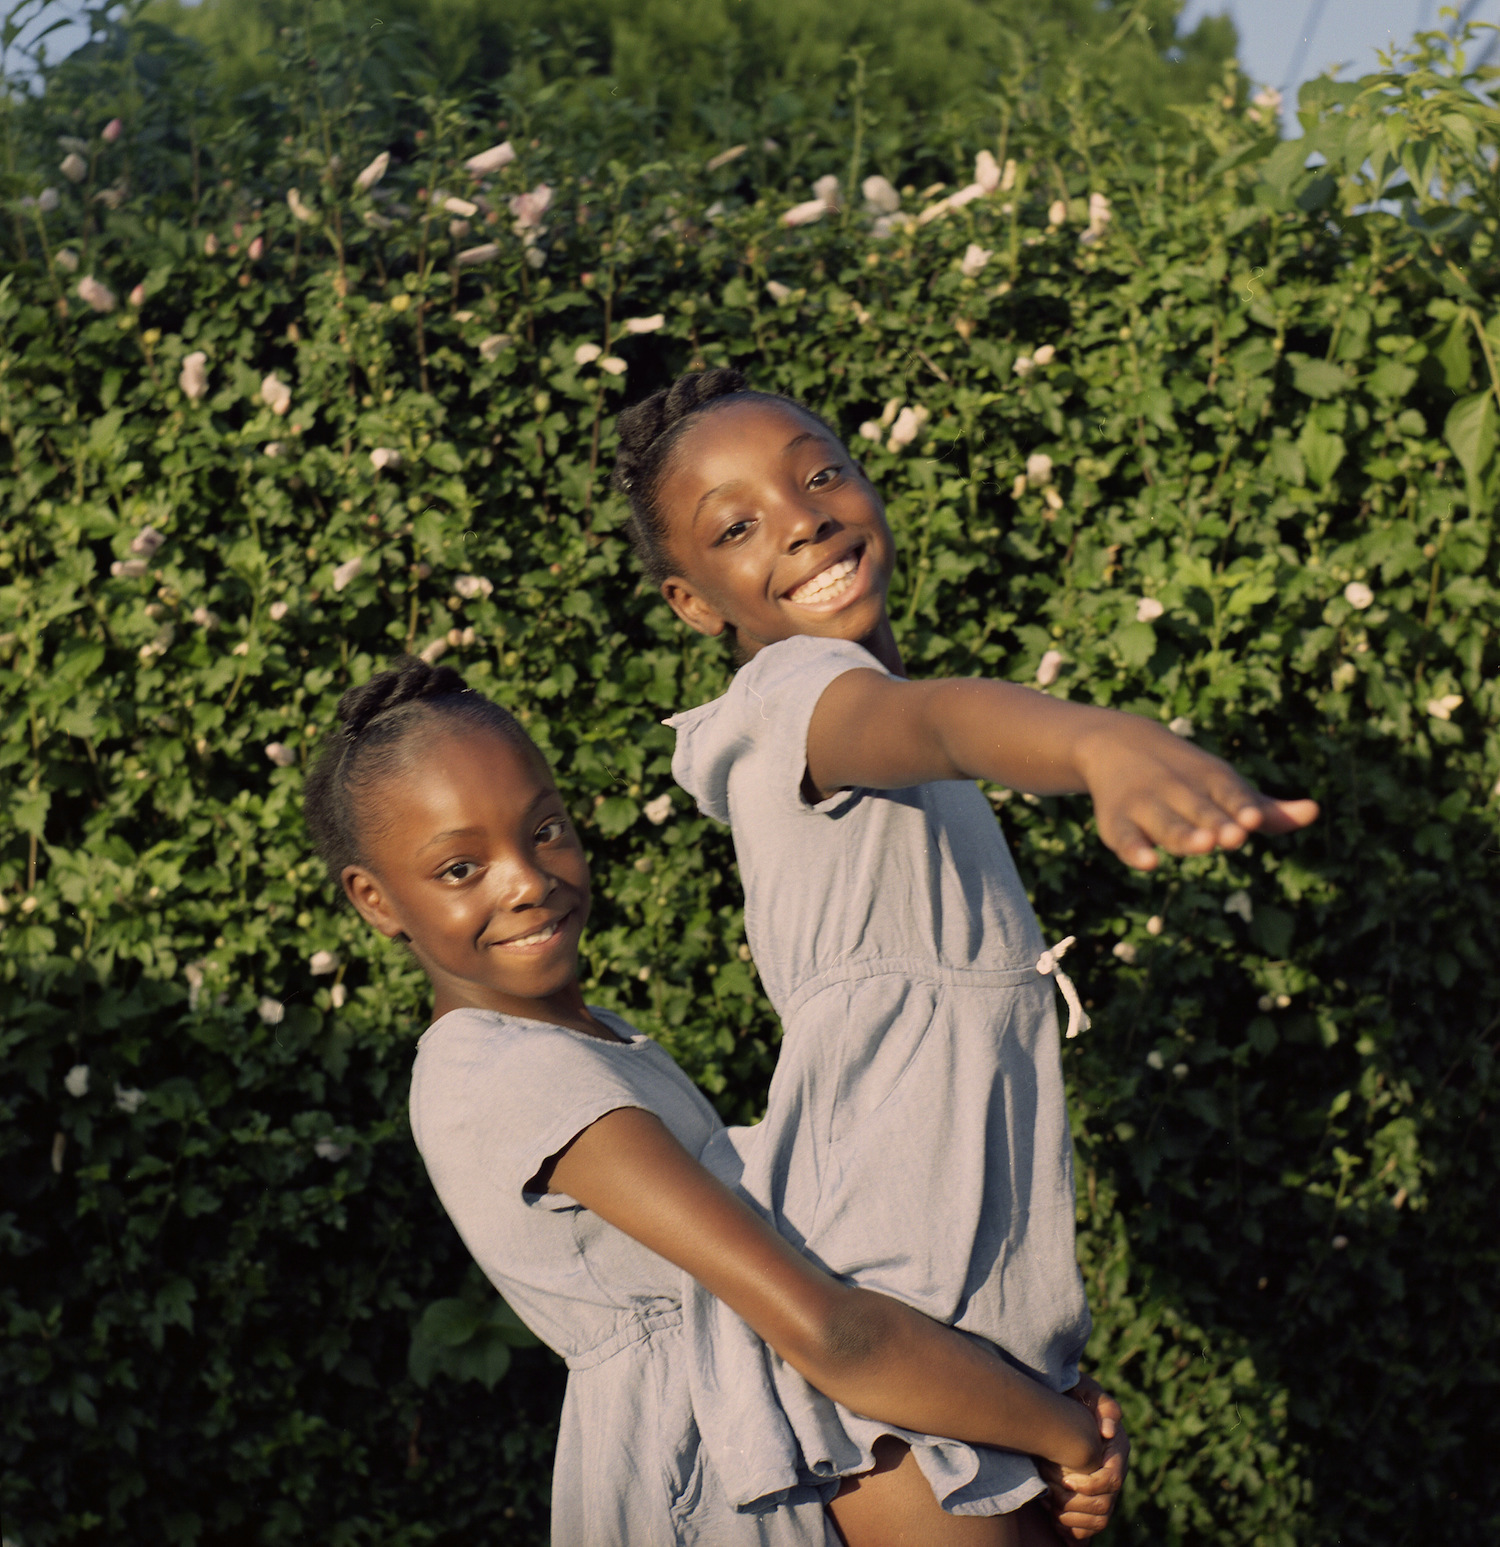 The enduring friendship of black twin sisters in photos